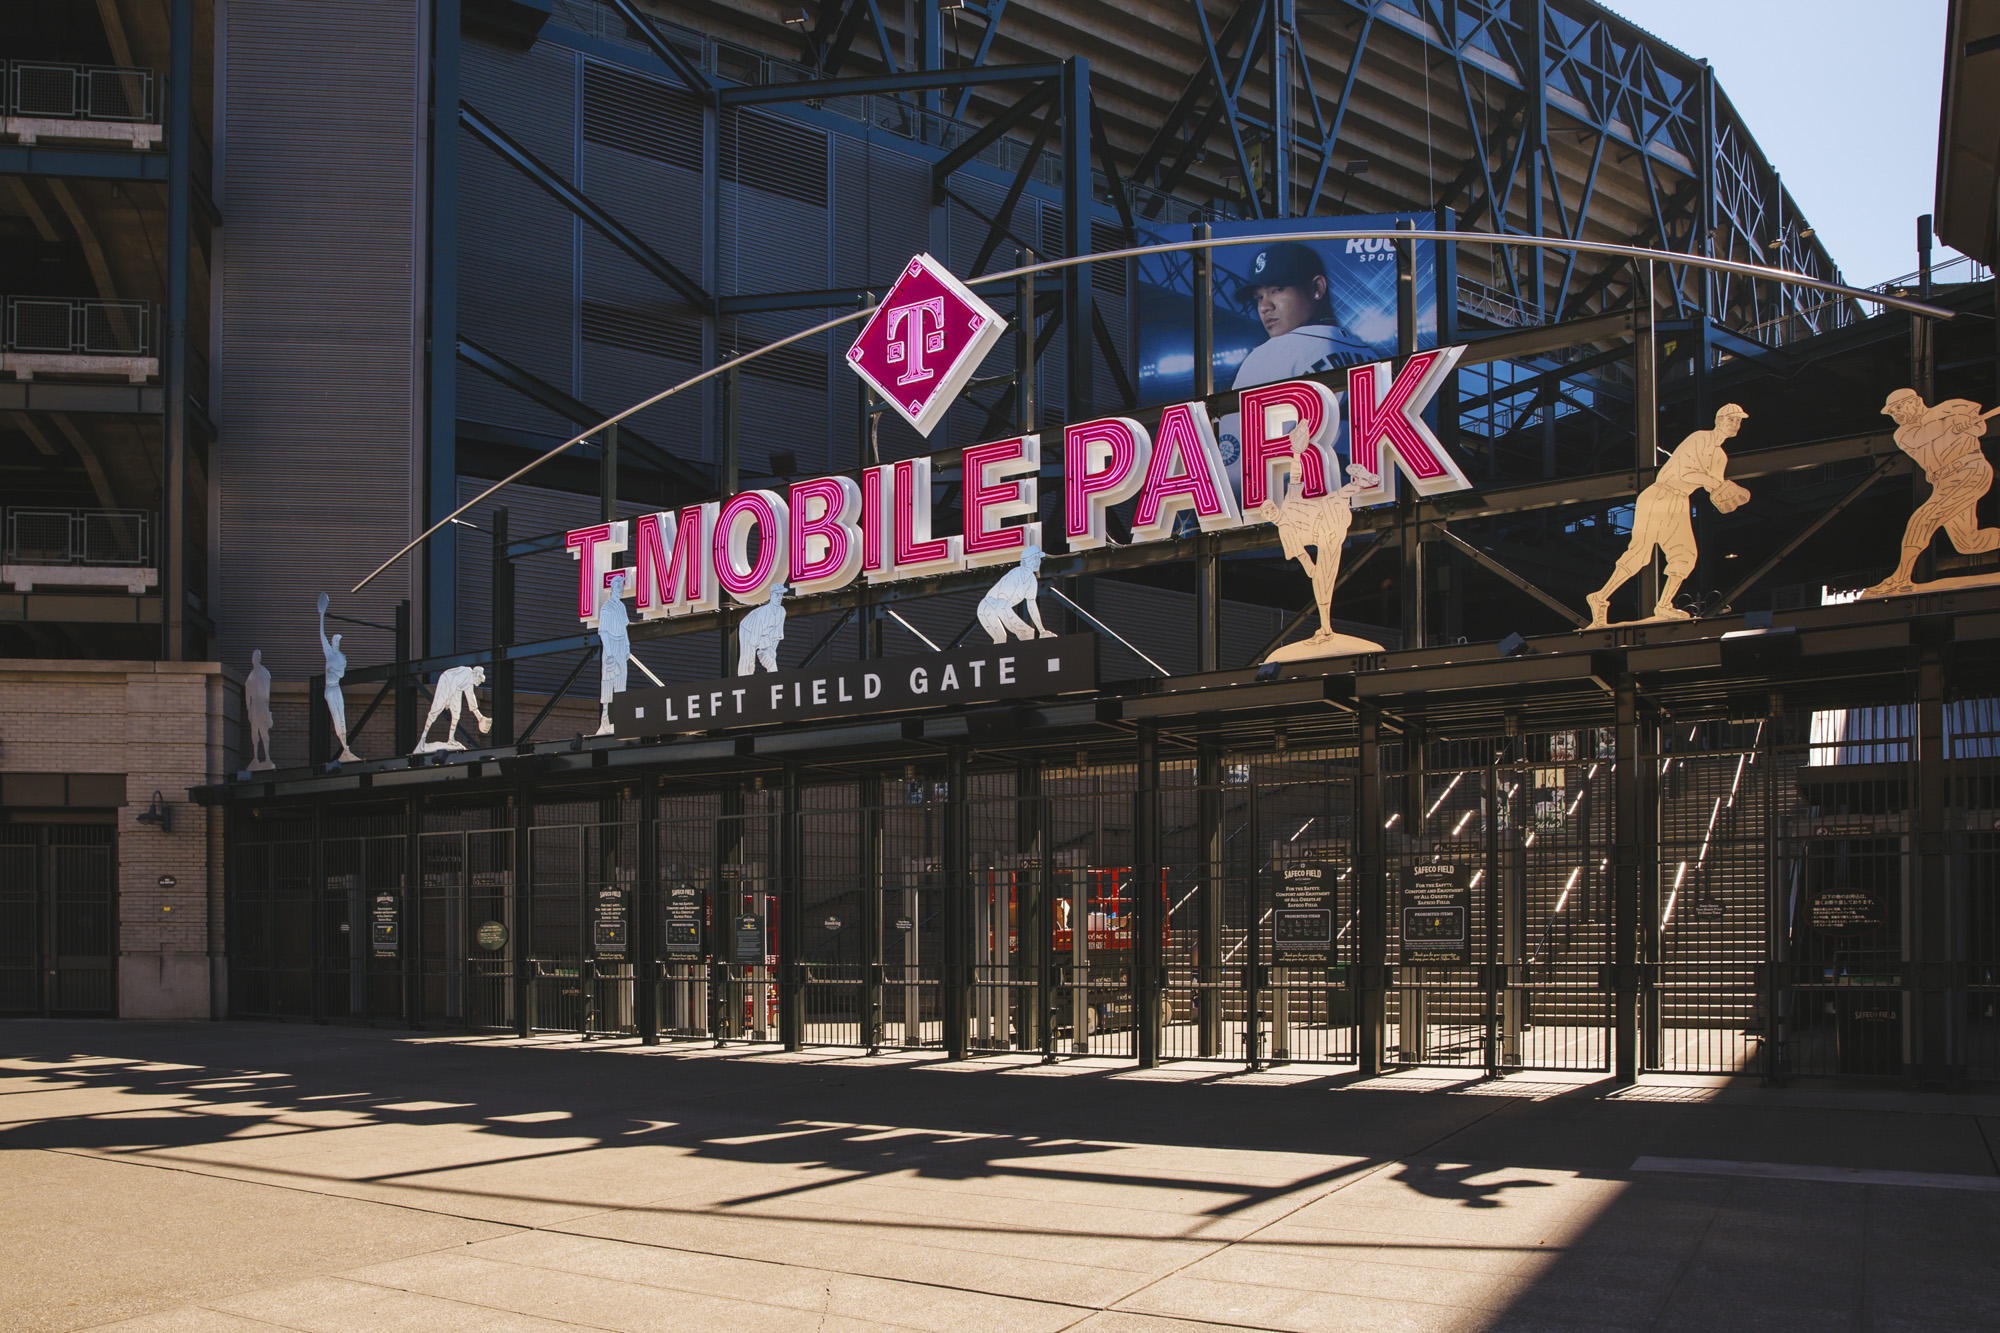 <p>No matter how the M's do this season, if you attend a game you'll sure be eating well! Paseo Caribbean, Li'l Woody's and Fat's Chicken are all newly coming to the stadium for the 2019 season, and Centerplate will be continuing their partnership with Chef Ethan Stowell. Updates to the menu include Paseo sandwiches, fish roe fries (?), Grand Salami Sandwich as a tribute to Dave Niehaus, gluten-free and vegan items, and even Met Market's 'The Cookie'. (Image: Sunita Martini / Seattle Refined)</p>